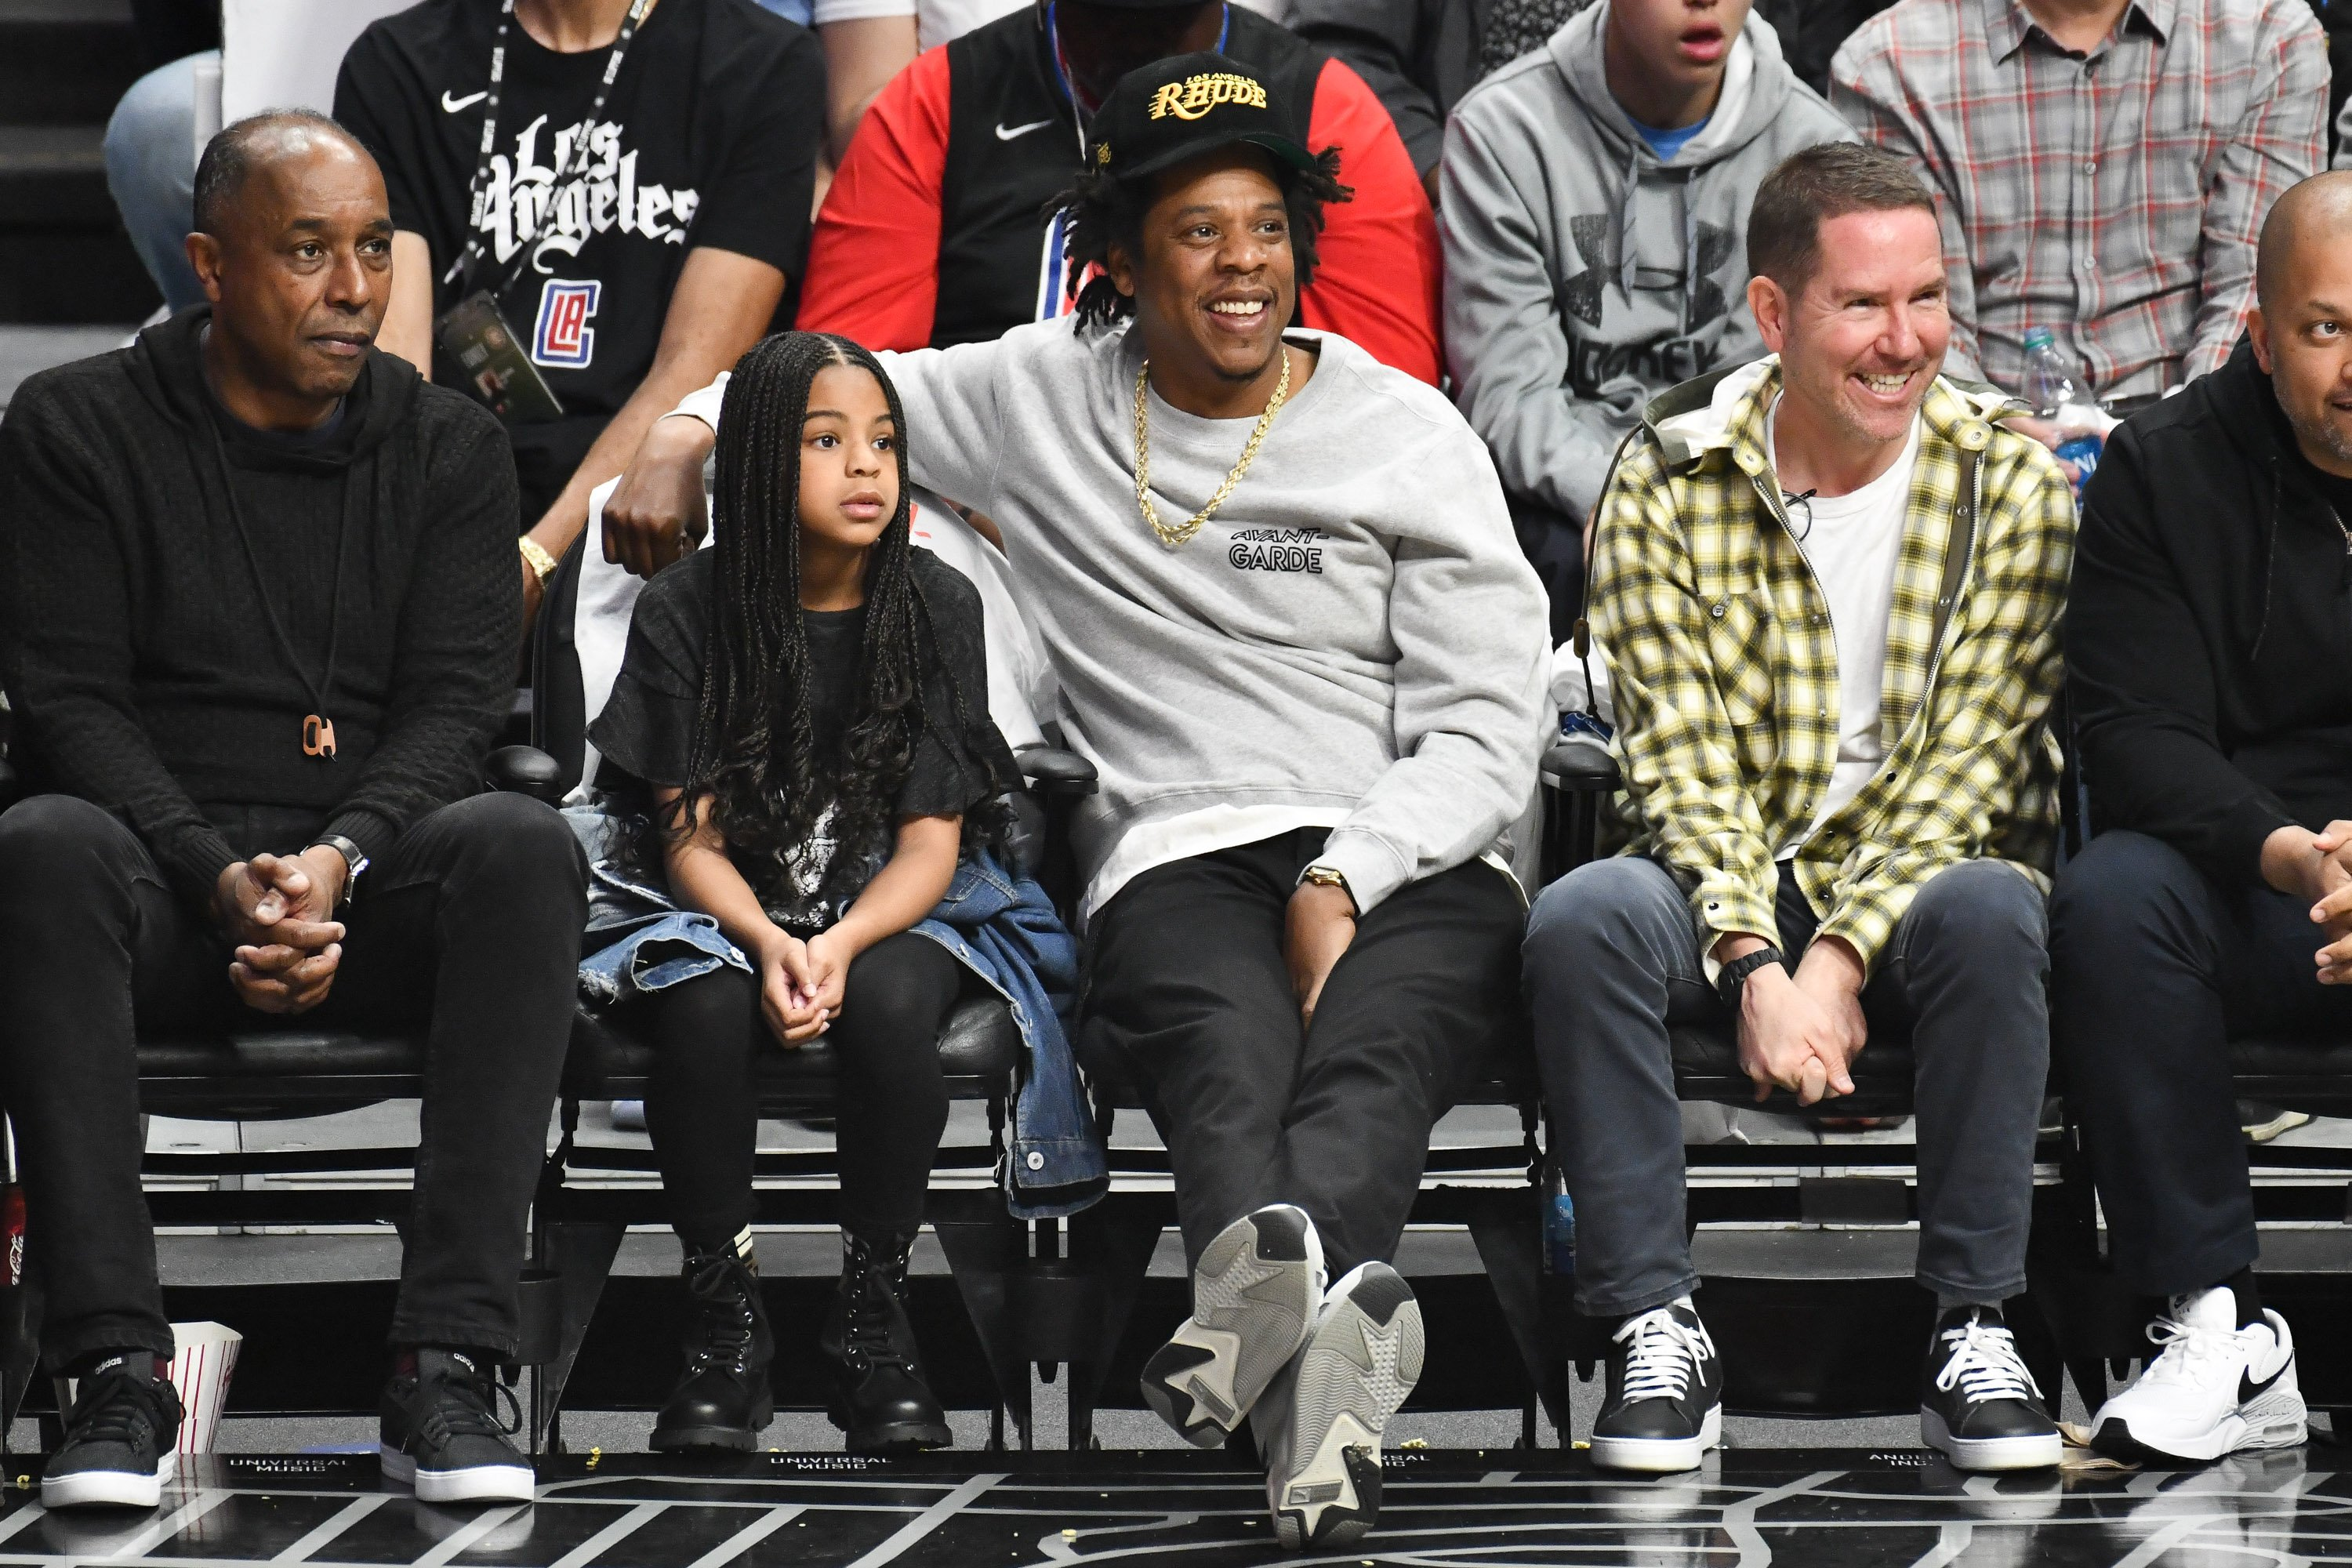 Blue Ivy with her father, Jay-Z watching the game between the Lakers and the Clippers on March 8, 2020 at the Staples Center. | Photo: Getty Images